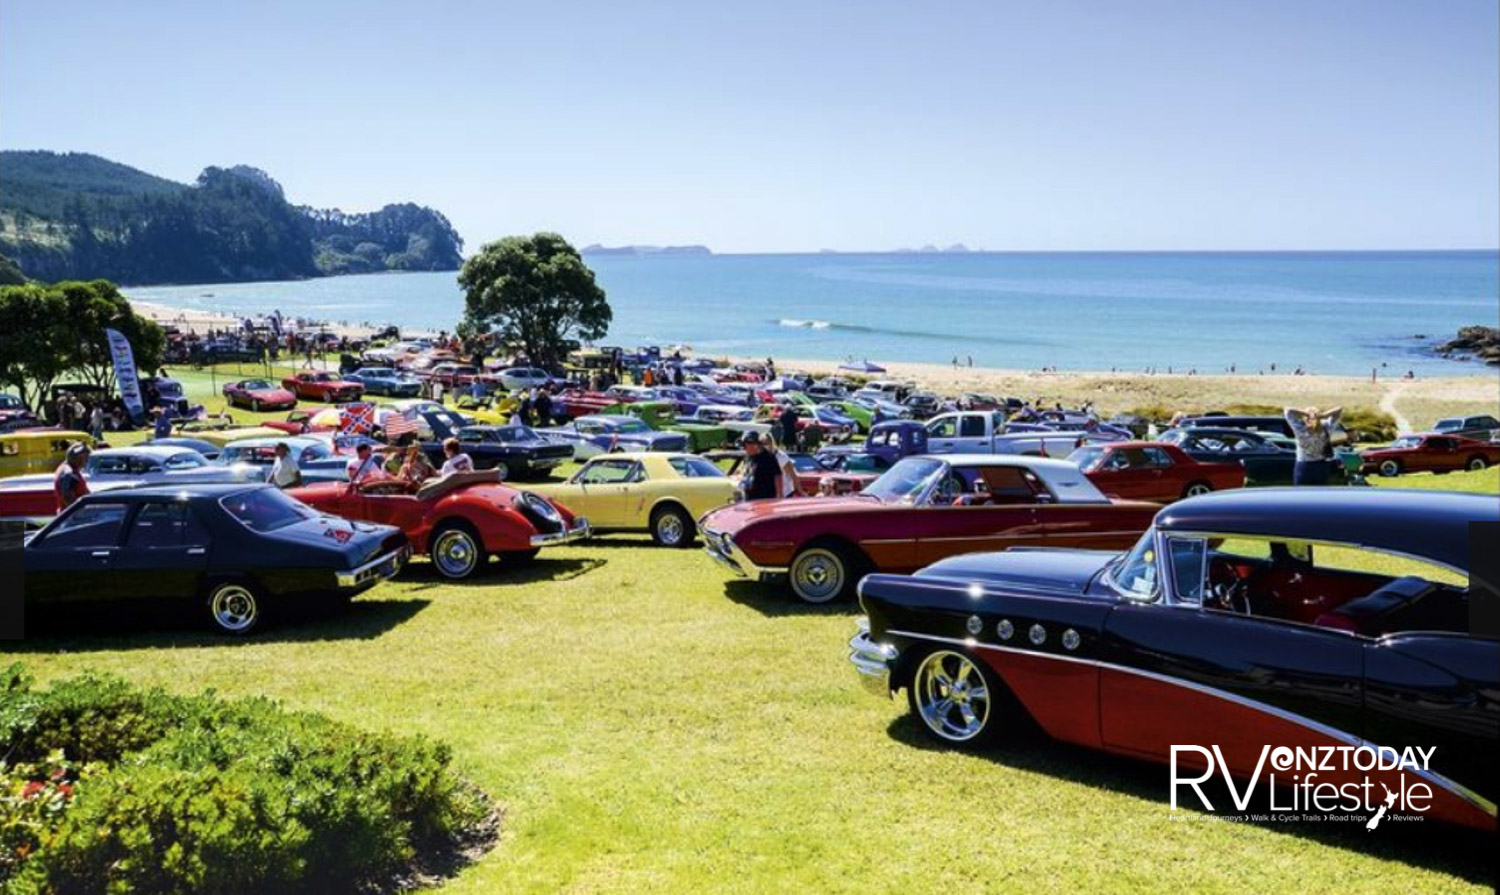 Whangamatā provides a stunning setting for the Beach Hop